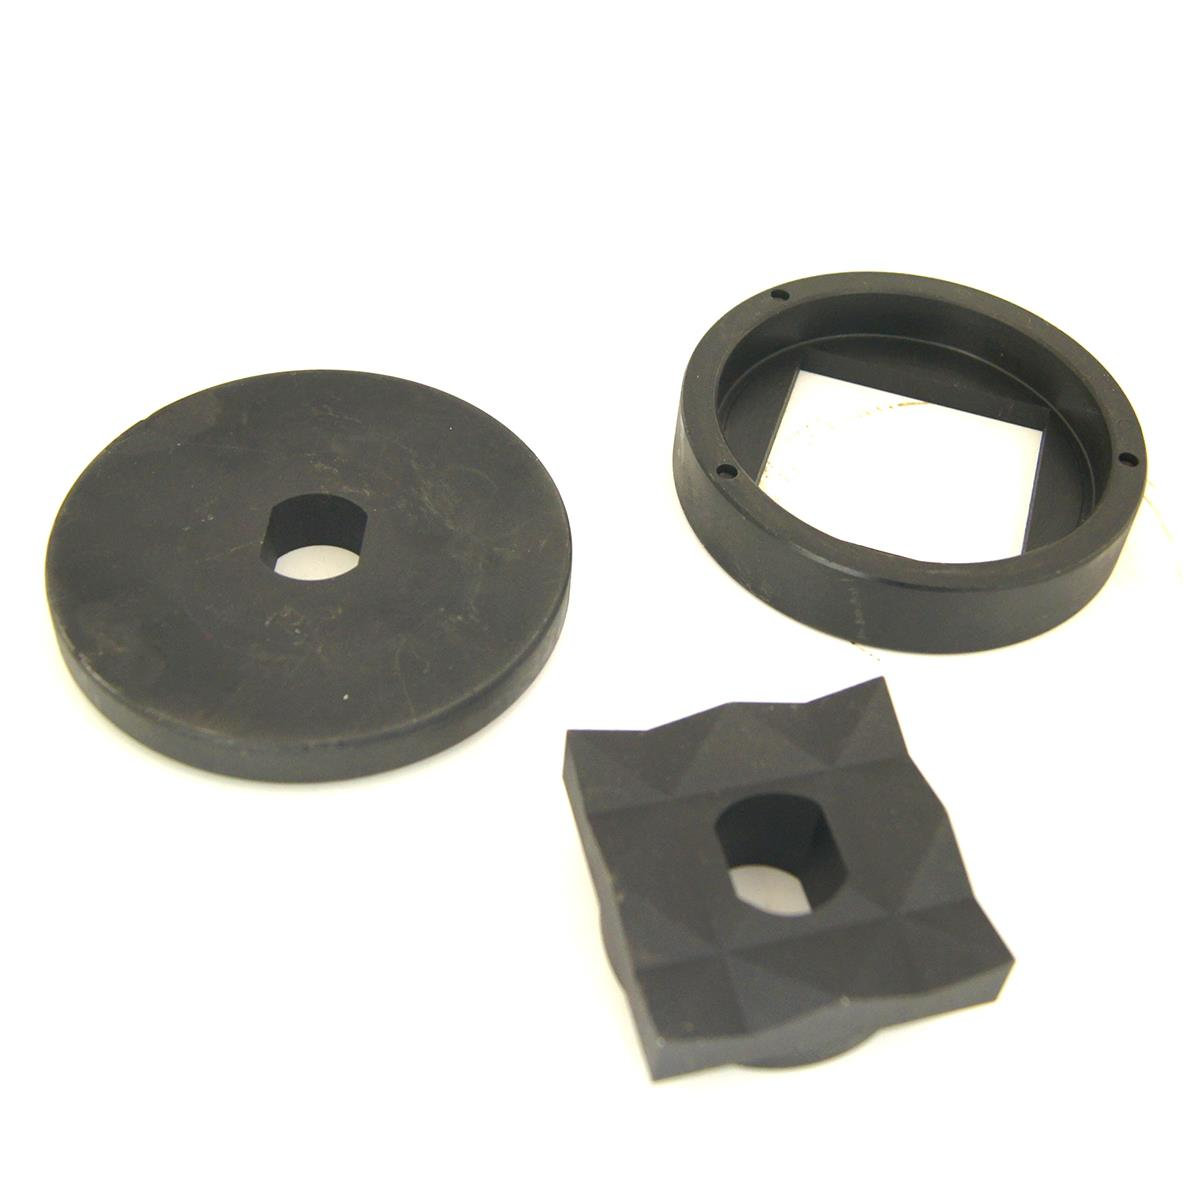 Hydraulic Sheet Metal Punch Tool Knock Out Replacement Dies Square /& Round